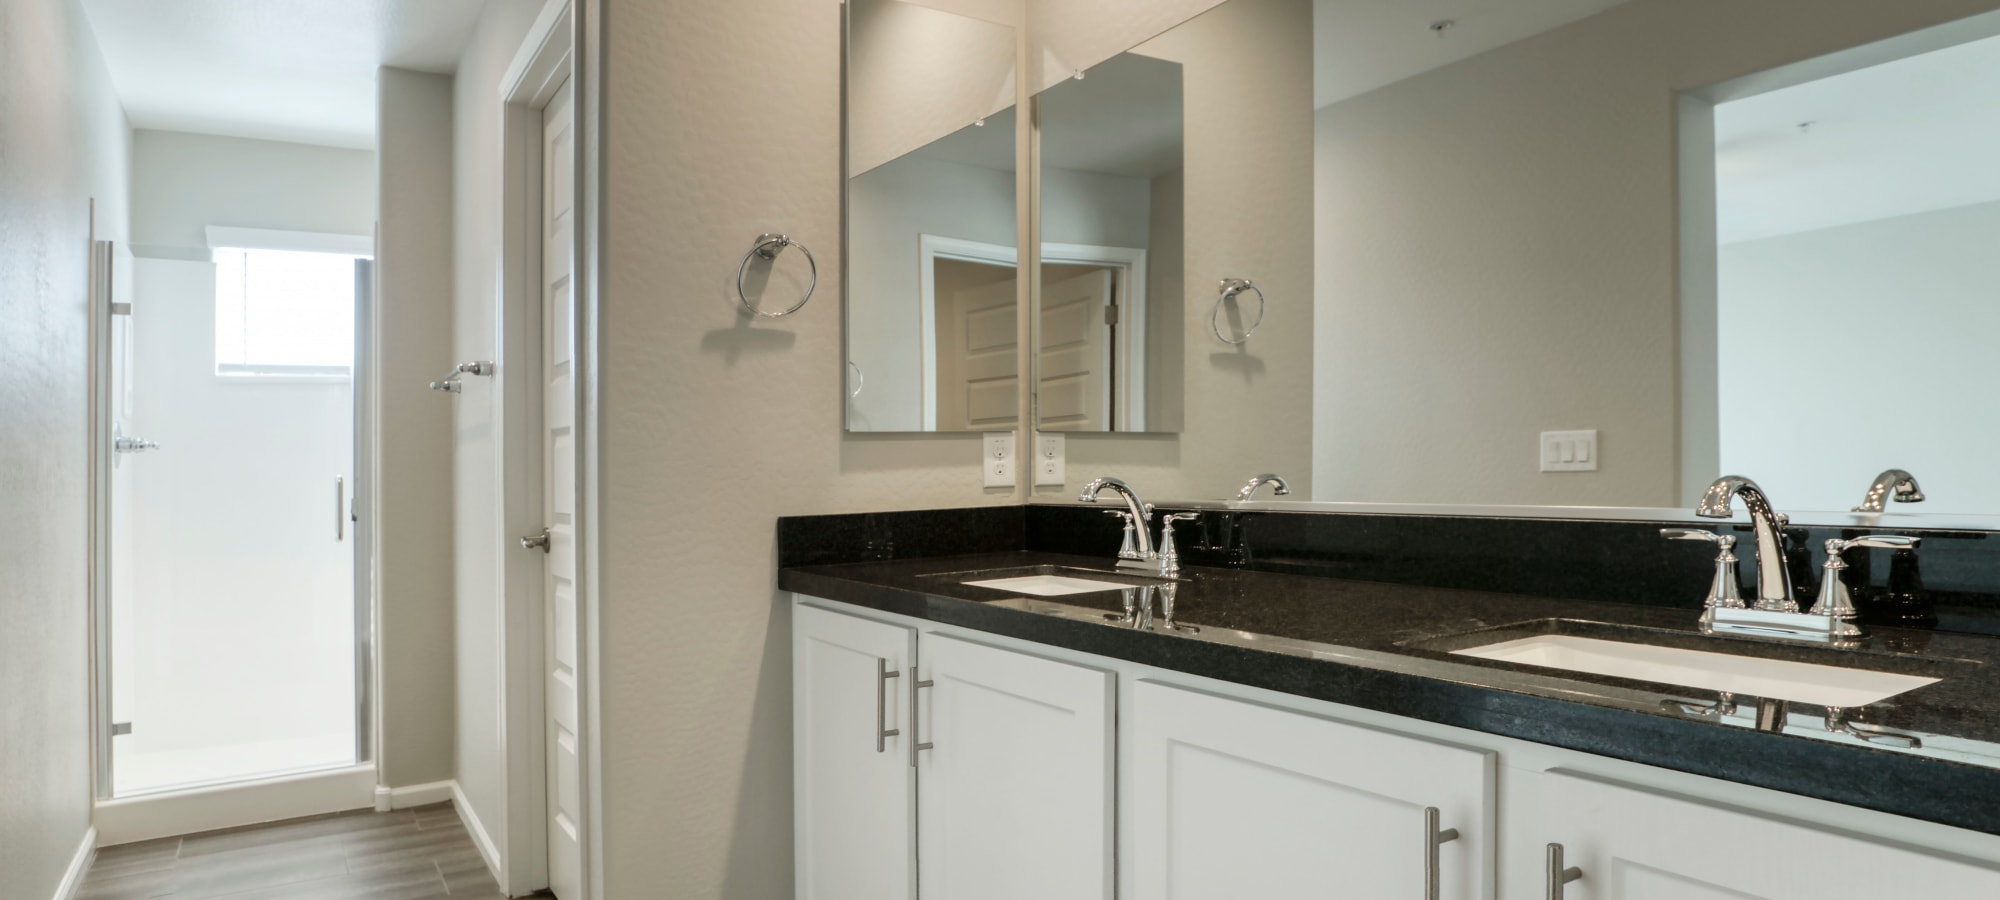 Spacious bathroom with white cabinets at BB Living at Eastmark in Mesa, Arizona